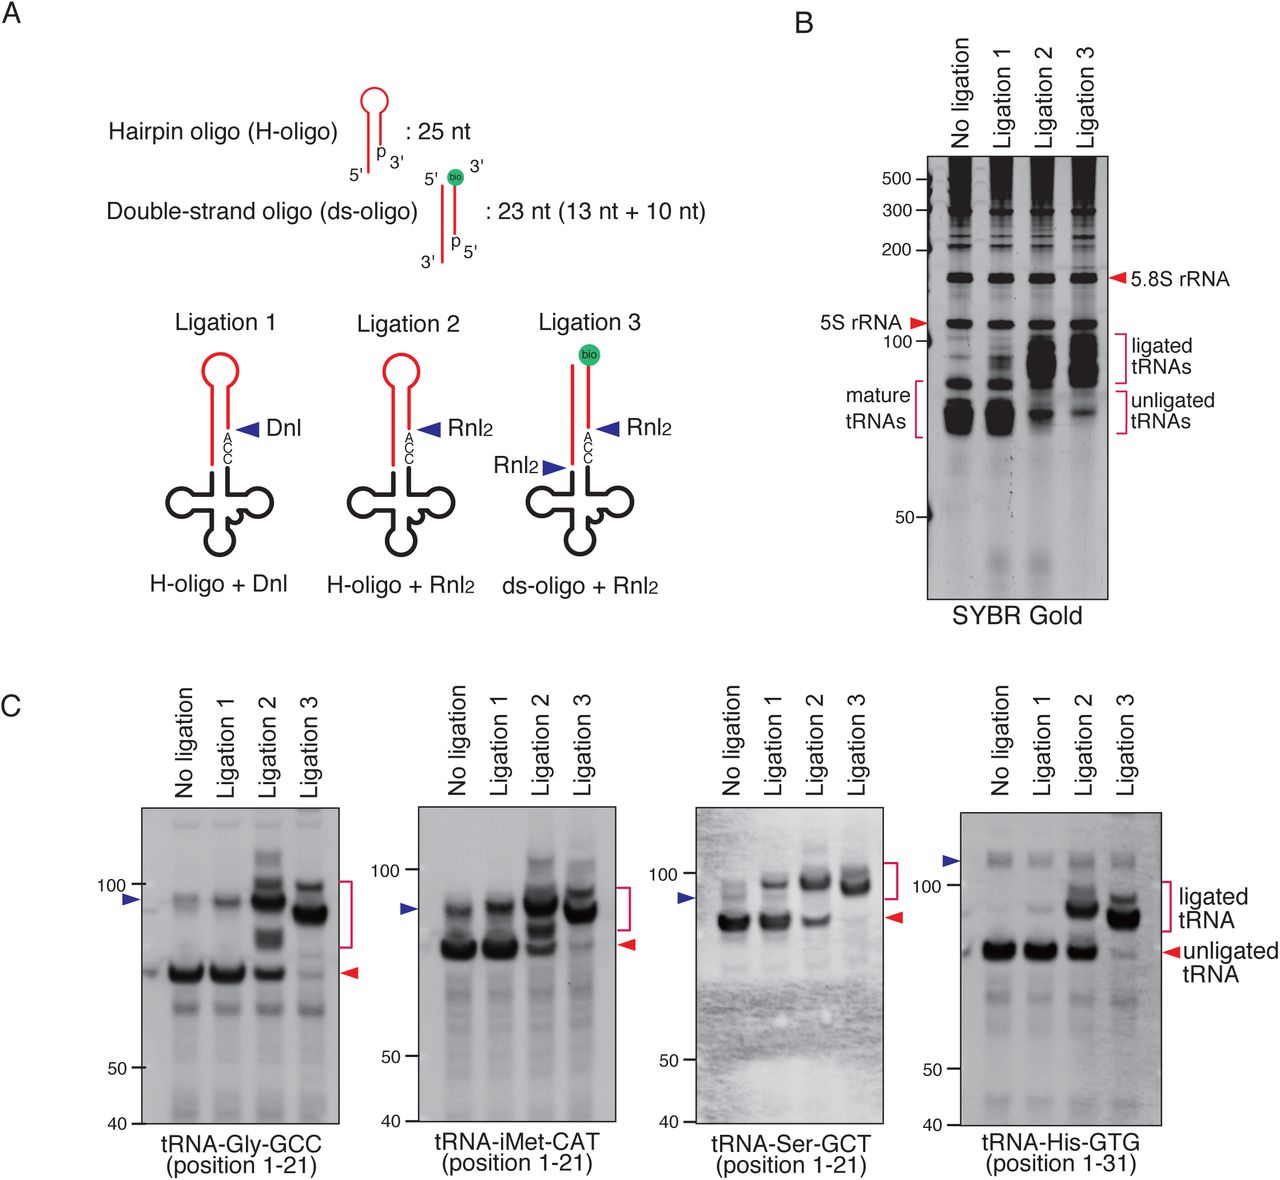 Validation of CCA-specific ligation methods. (A) Schema for three CCA-specific ligation methods. Dnl: T4 DNA ligase, Rnl2: T4 RNA ligase 2, bio: biotin. (B-C) The method using double-strand oligo and RNA ligase 2 has the best ligation efficiency. (B) SYBR Gold staining and (C) Northern blotting for CCA-specific ligation products. The blue arrowheads indicate the bands for pre-tRNAs.